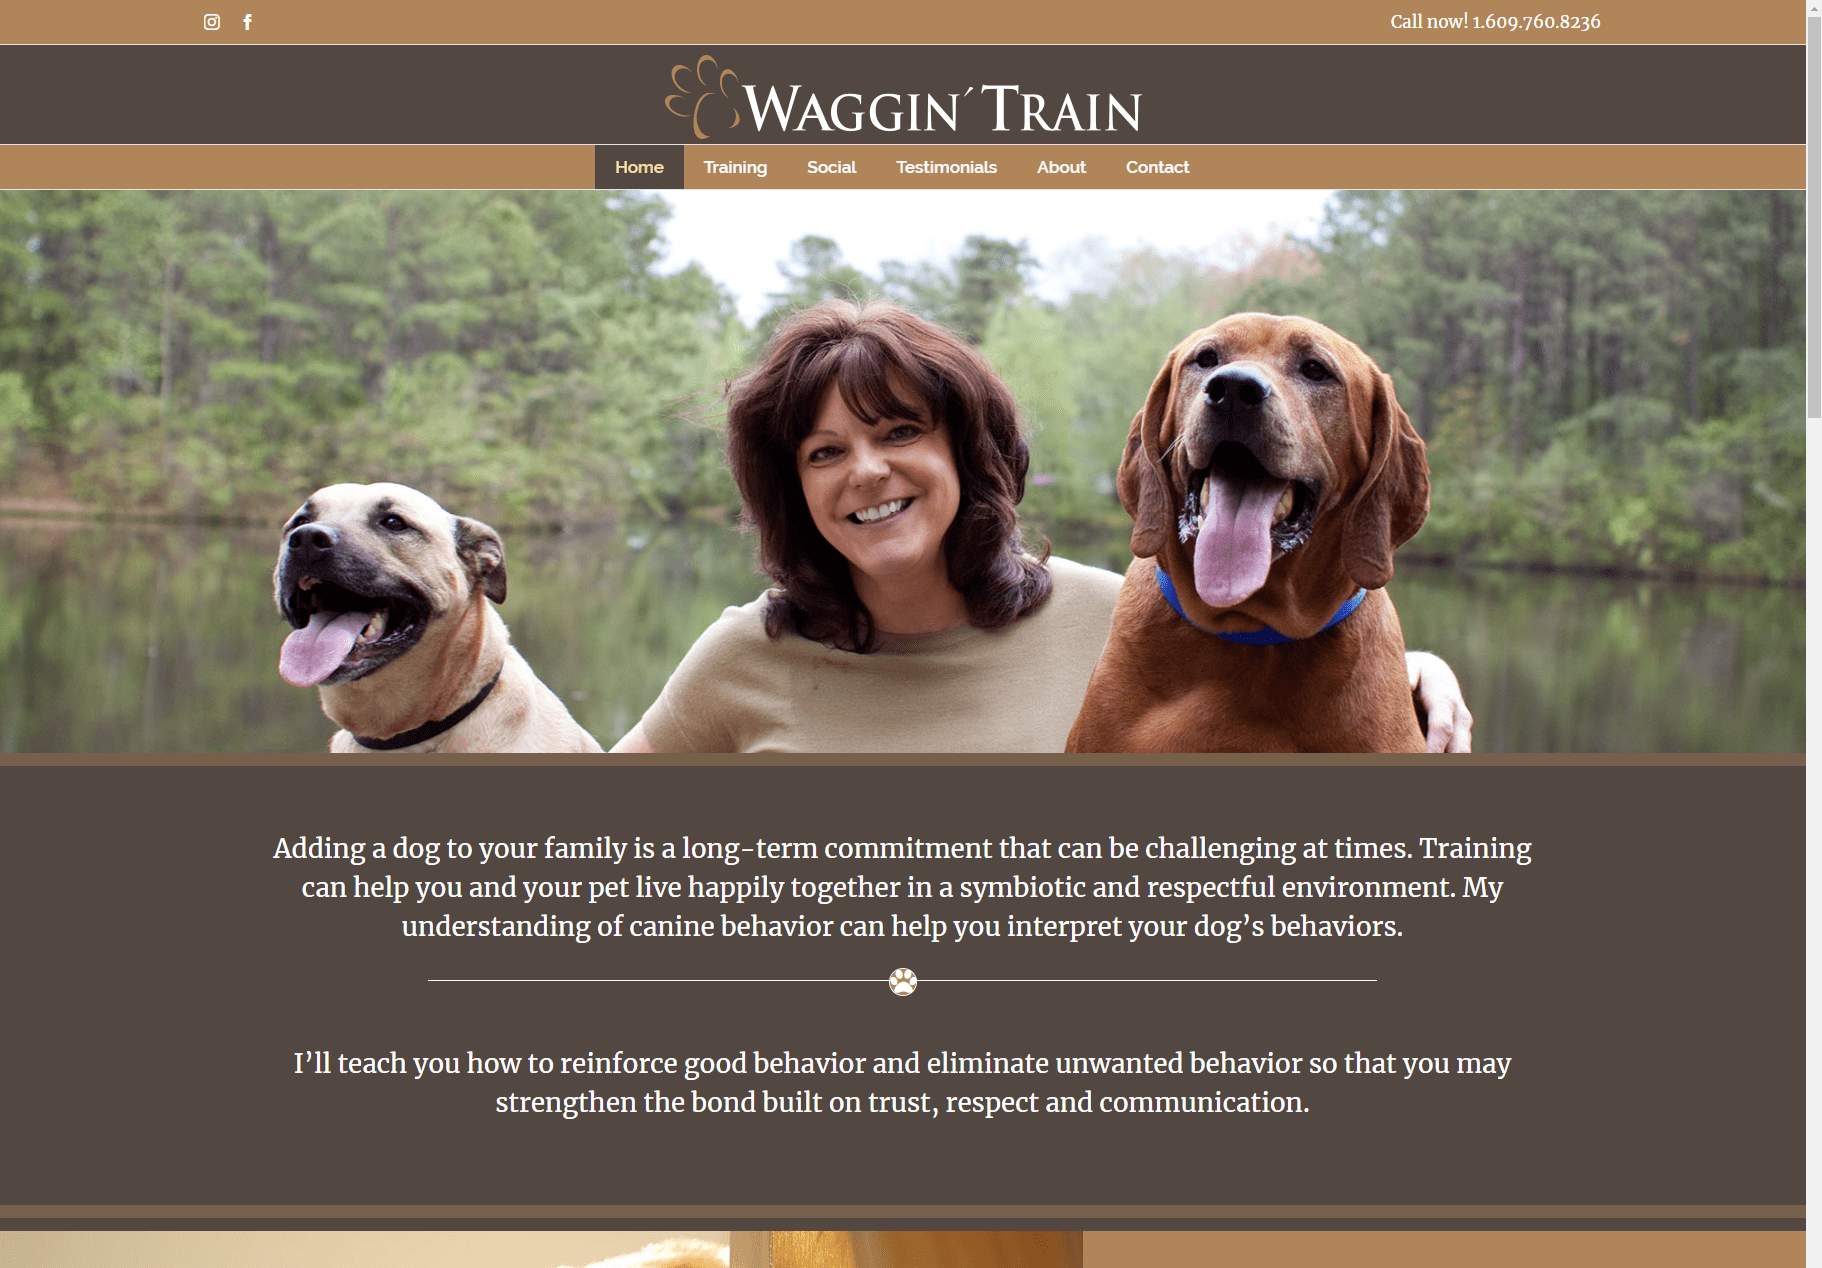 Waggin Train